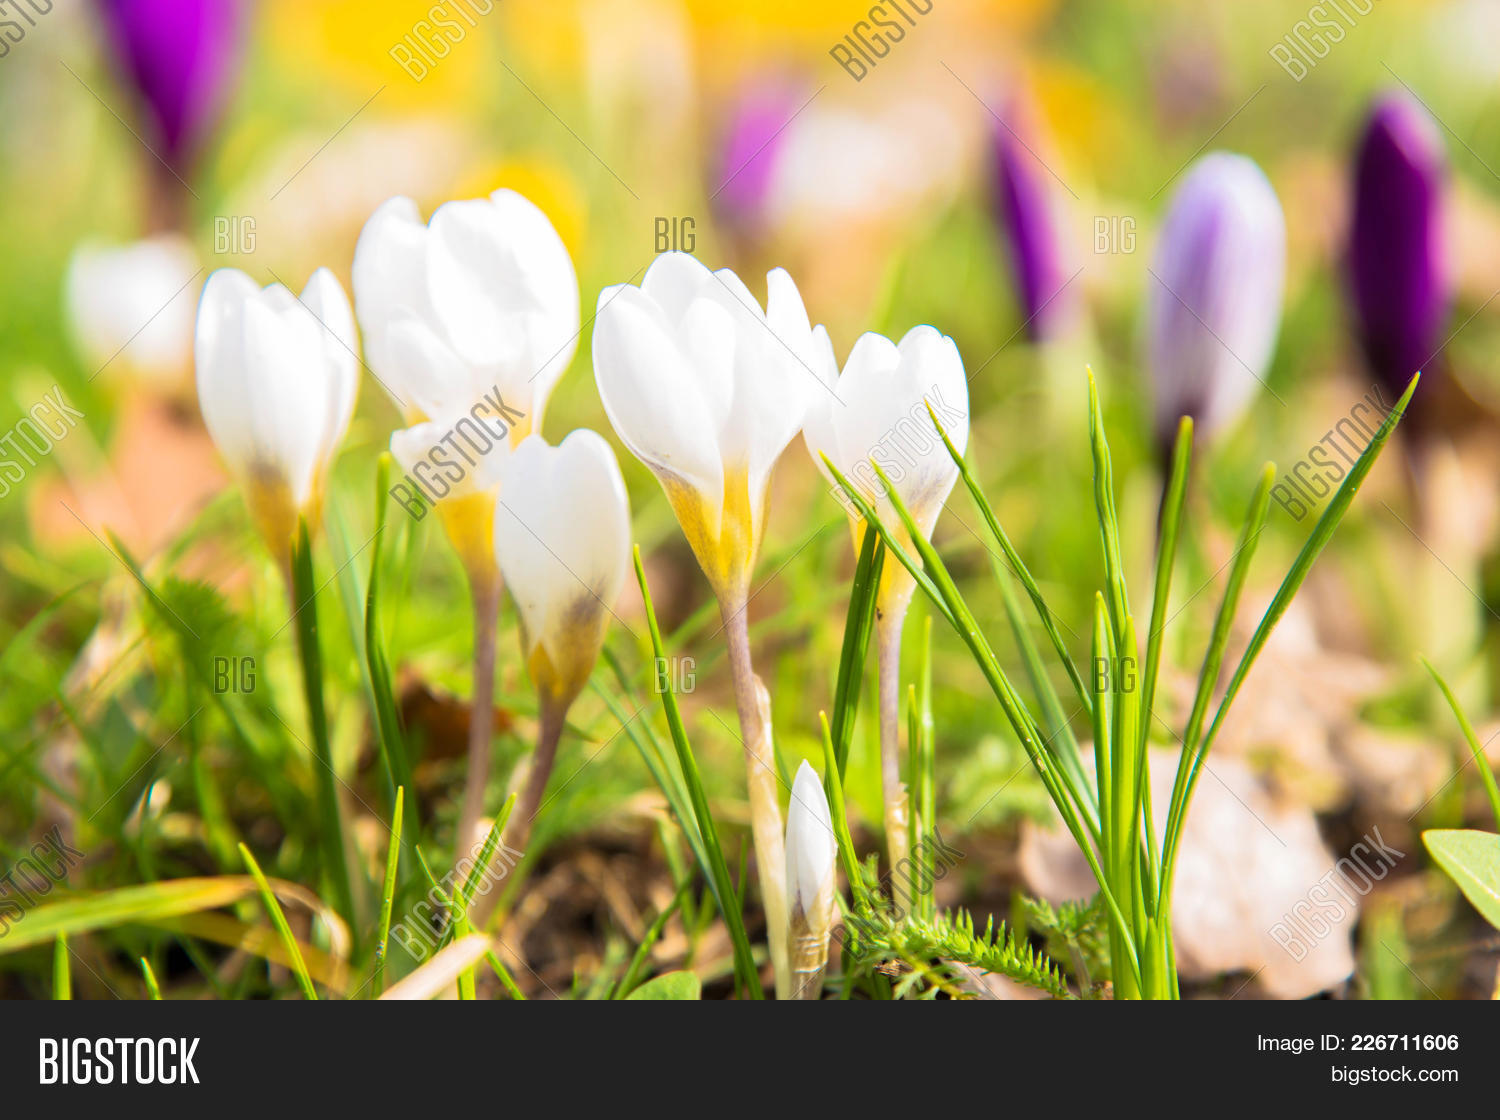 First spring flowers image photo free trial bigstock the first spring flowers crocus white spring fragrant flowers of crocus and green grass mightylinksfo